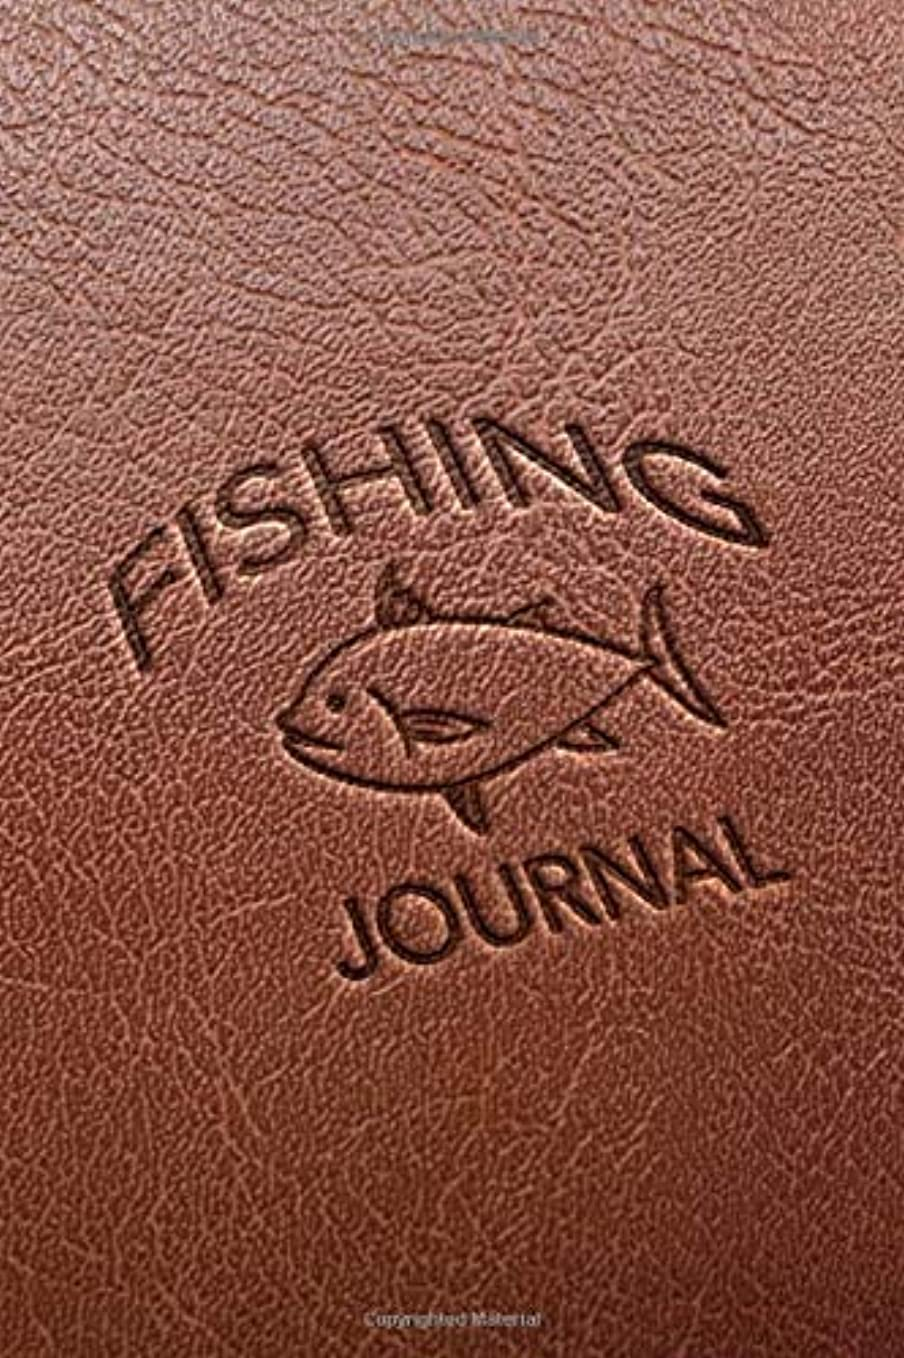 ウルル訴えるハードリングFishing Journal: Faux Leather Blank Lined Notebook for Fishermen to Take Notes, Record Catches & Write Down Trip Stories - Brown with Stamped Appearance and Fish Design - Gift for Father's Day, Birthday, Christmas for Men, Dad, Grandpa, Husband - Size 6x9